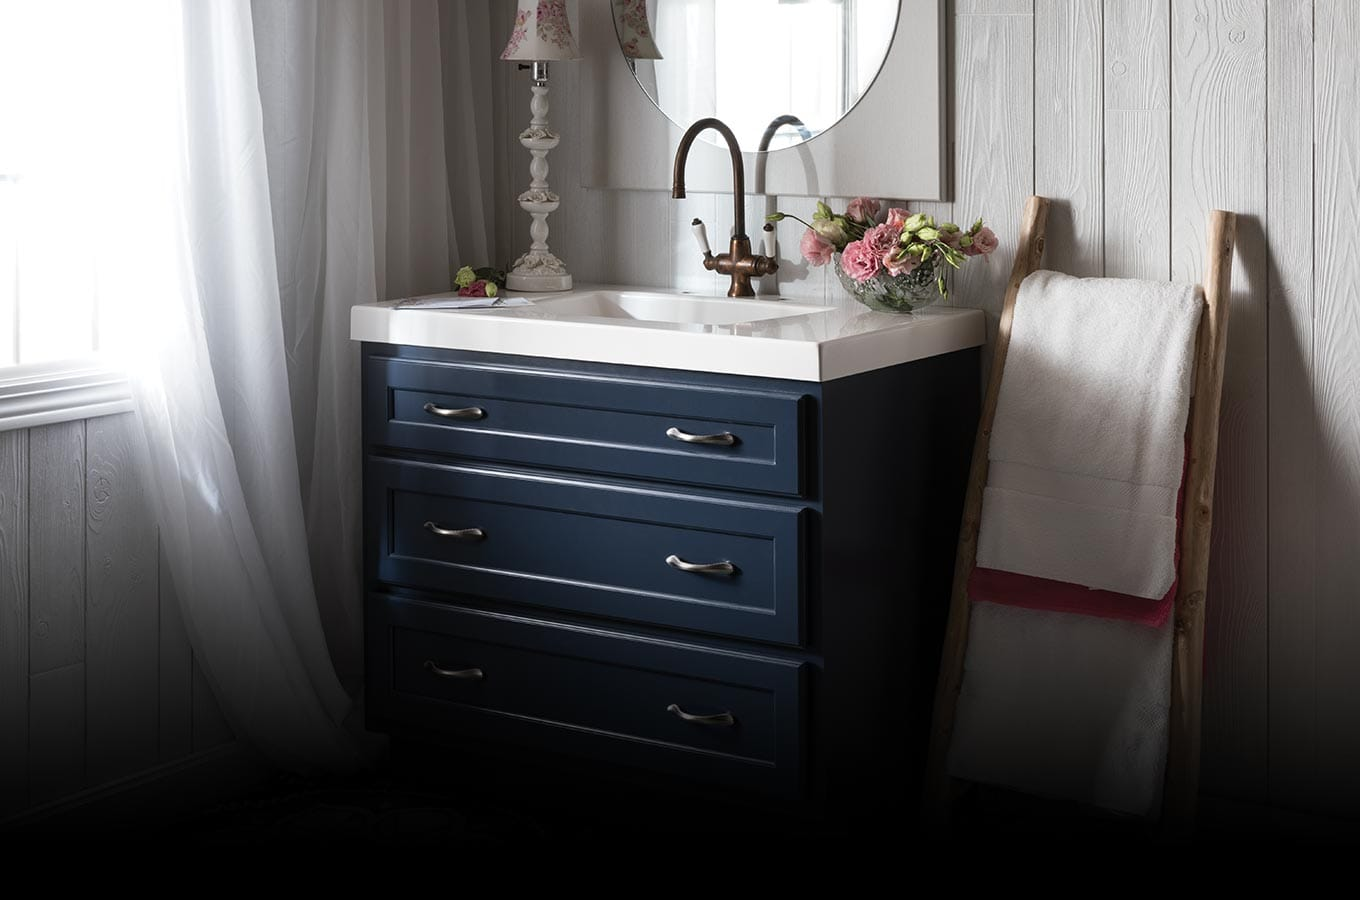 rustic of bertch cabinets sinks for wayfair kingston bare styles picture bowl trend vanity tops bath ideas and by vanities with amazing stylish bathroom shocking wooden